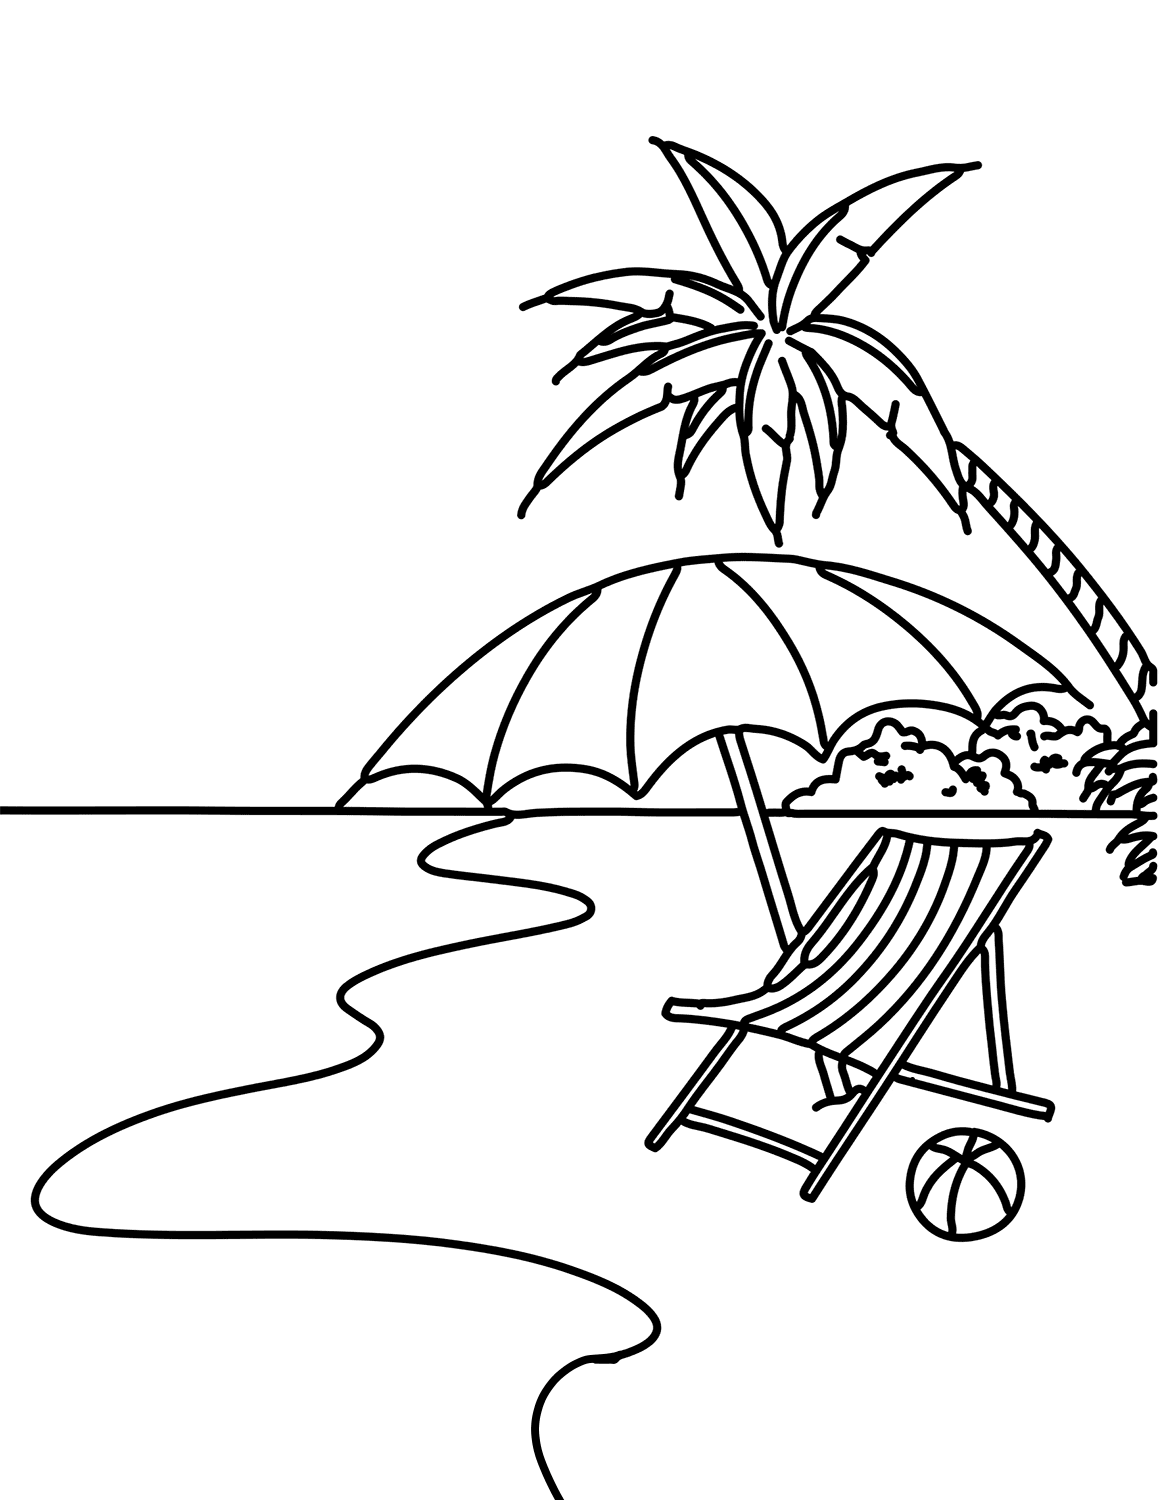 beach scene coloring sheet free printable beach coloring pages for kids beach scene coloring sheet